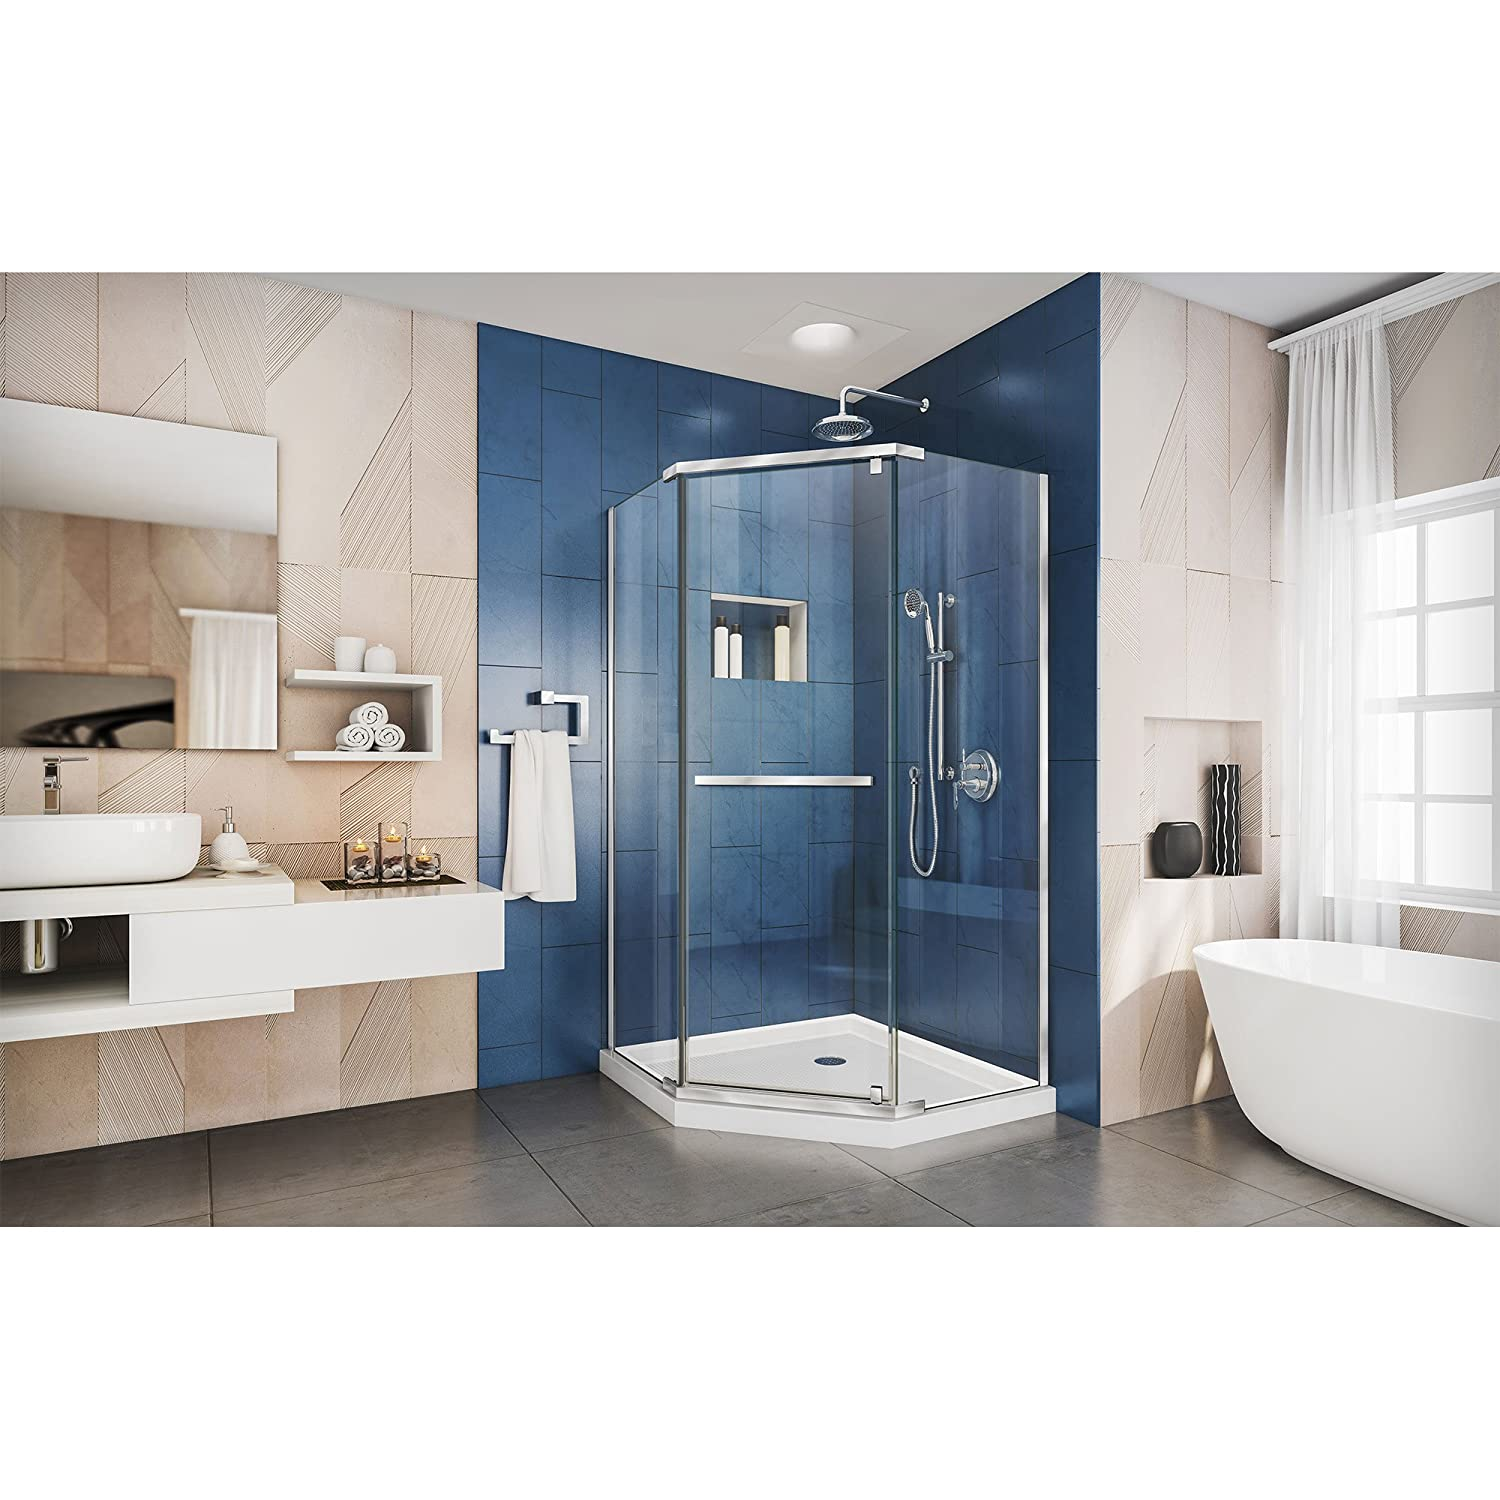 DreamLine DL-6031-01 Prism Frameless Pivot Shower Enclosure ...